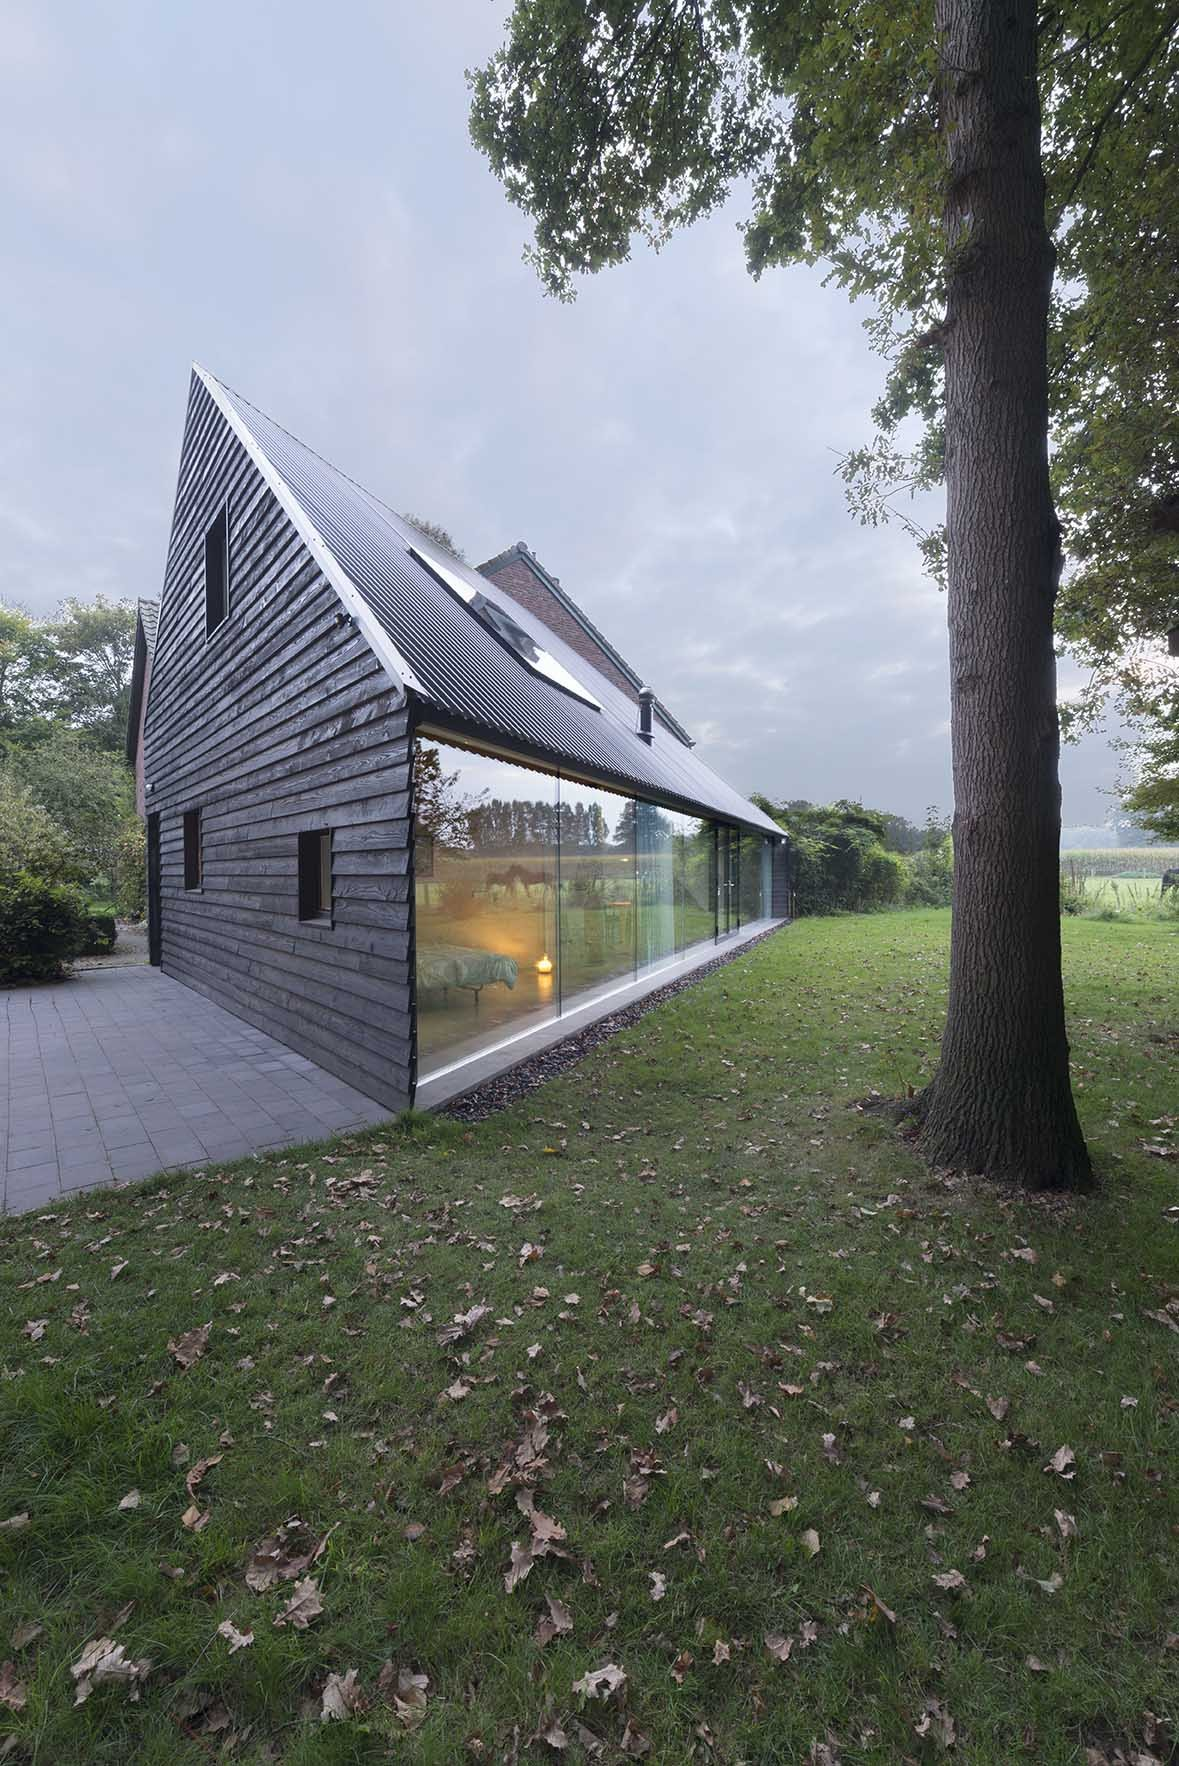 This House With Bluestone Walls Overlooks The Landscape: House In Almen / Barend Koolhaas